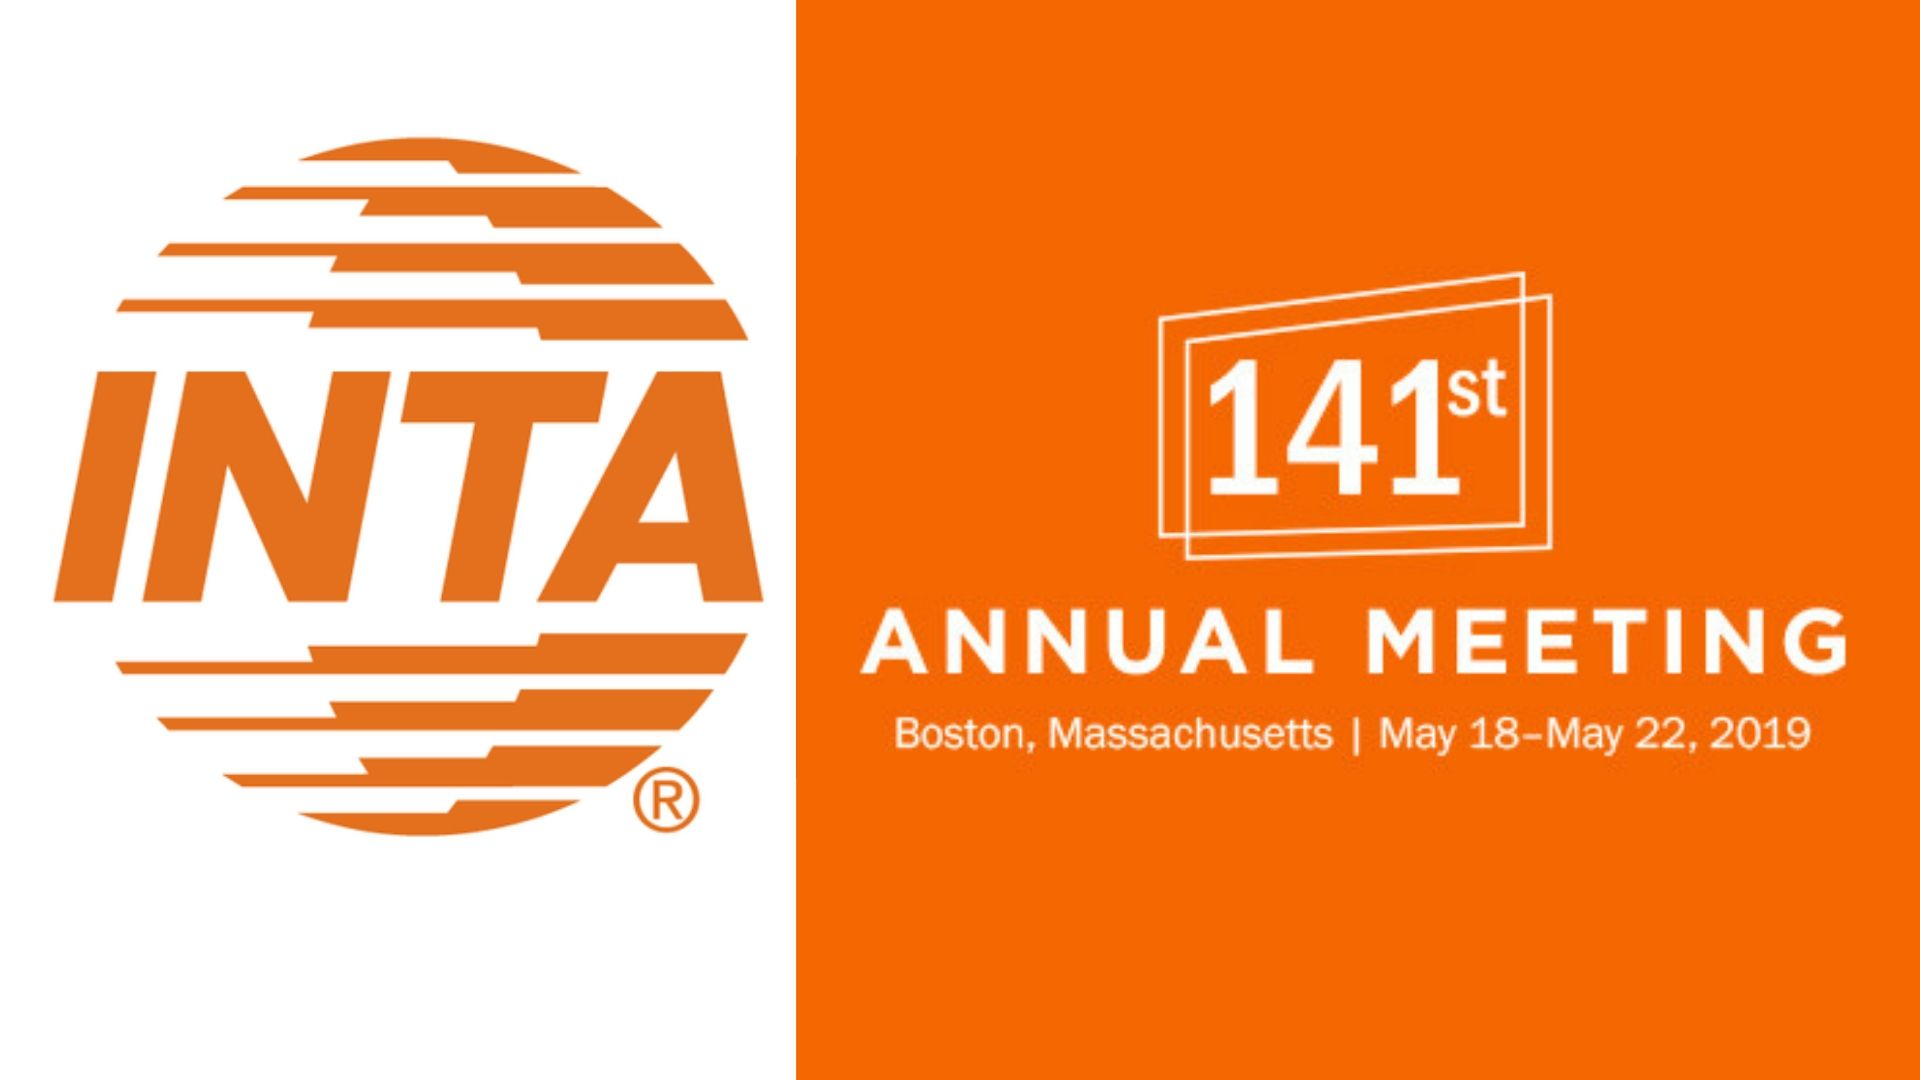 International Trademark Association's 2019 Annual Conference in Boston